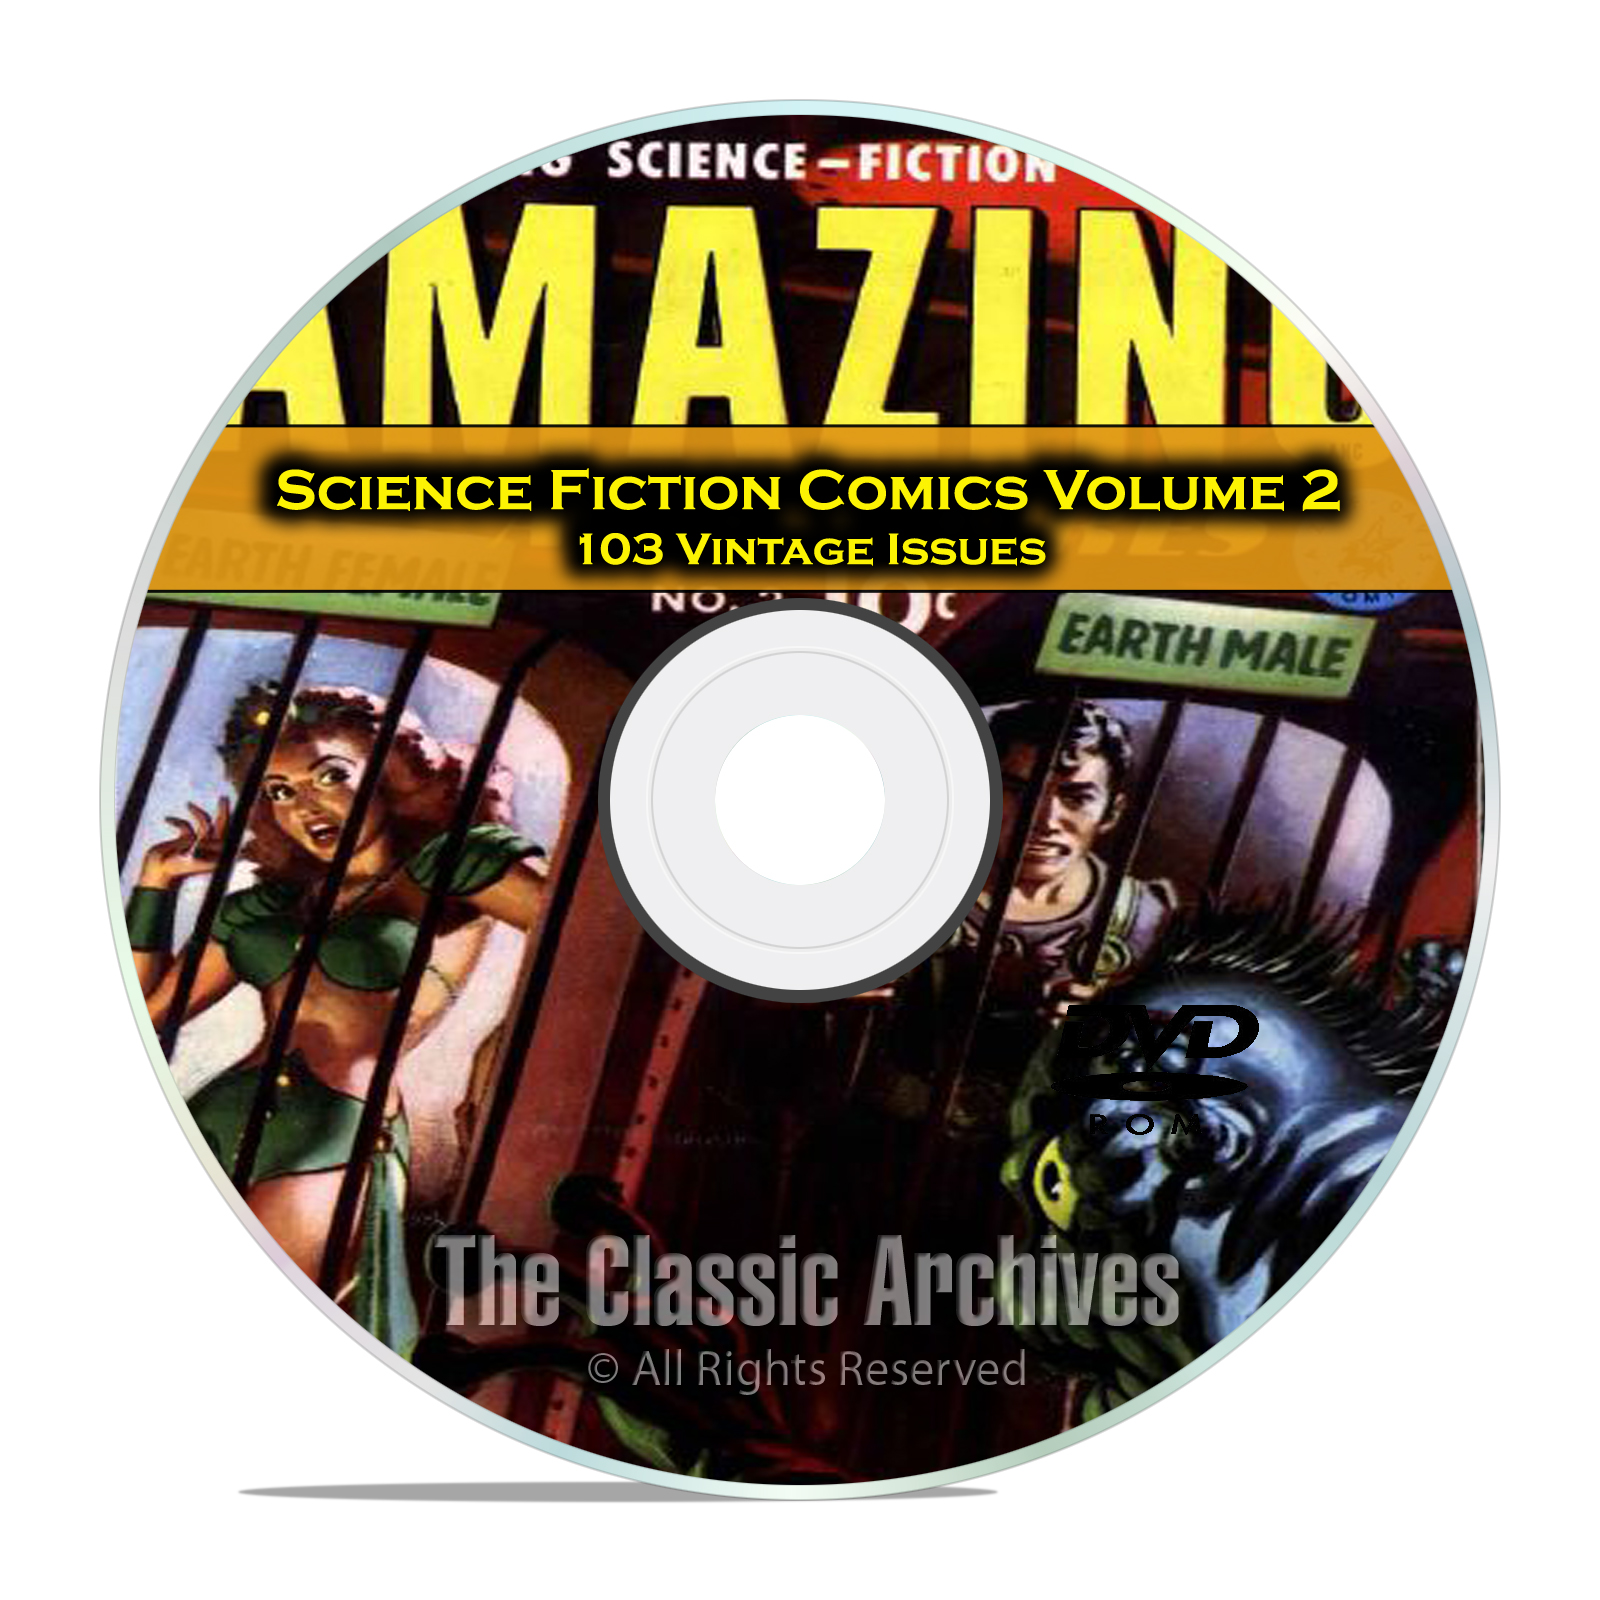 Science Fiction Comics, Vol 2, Strange Worlds Amazing Golden Age Comics DVD